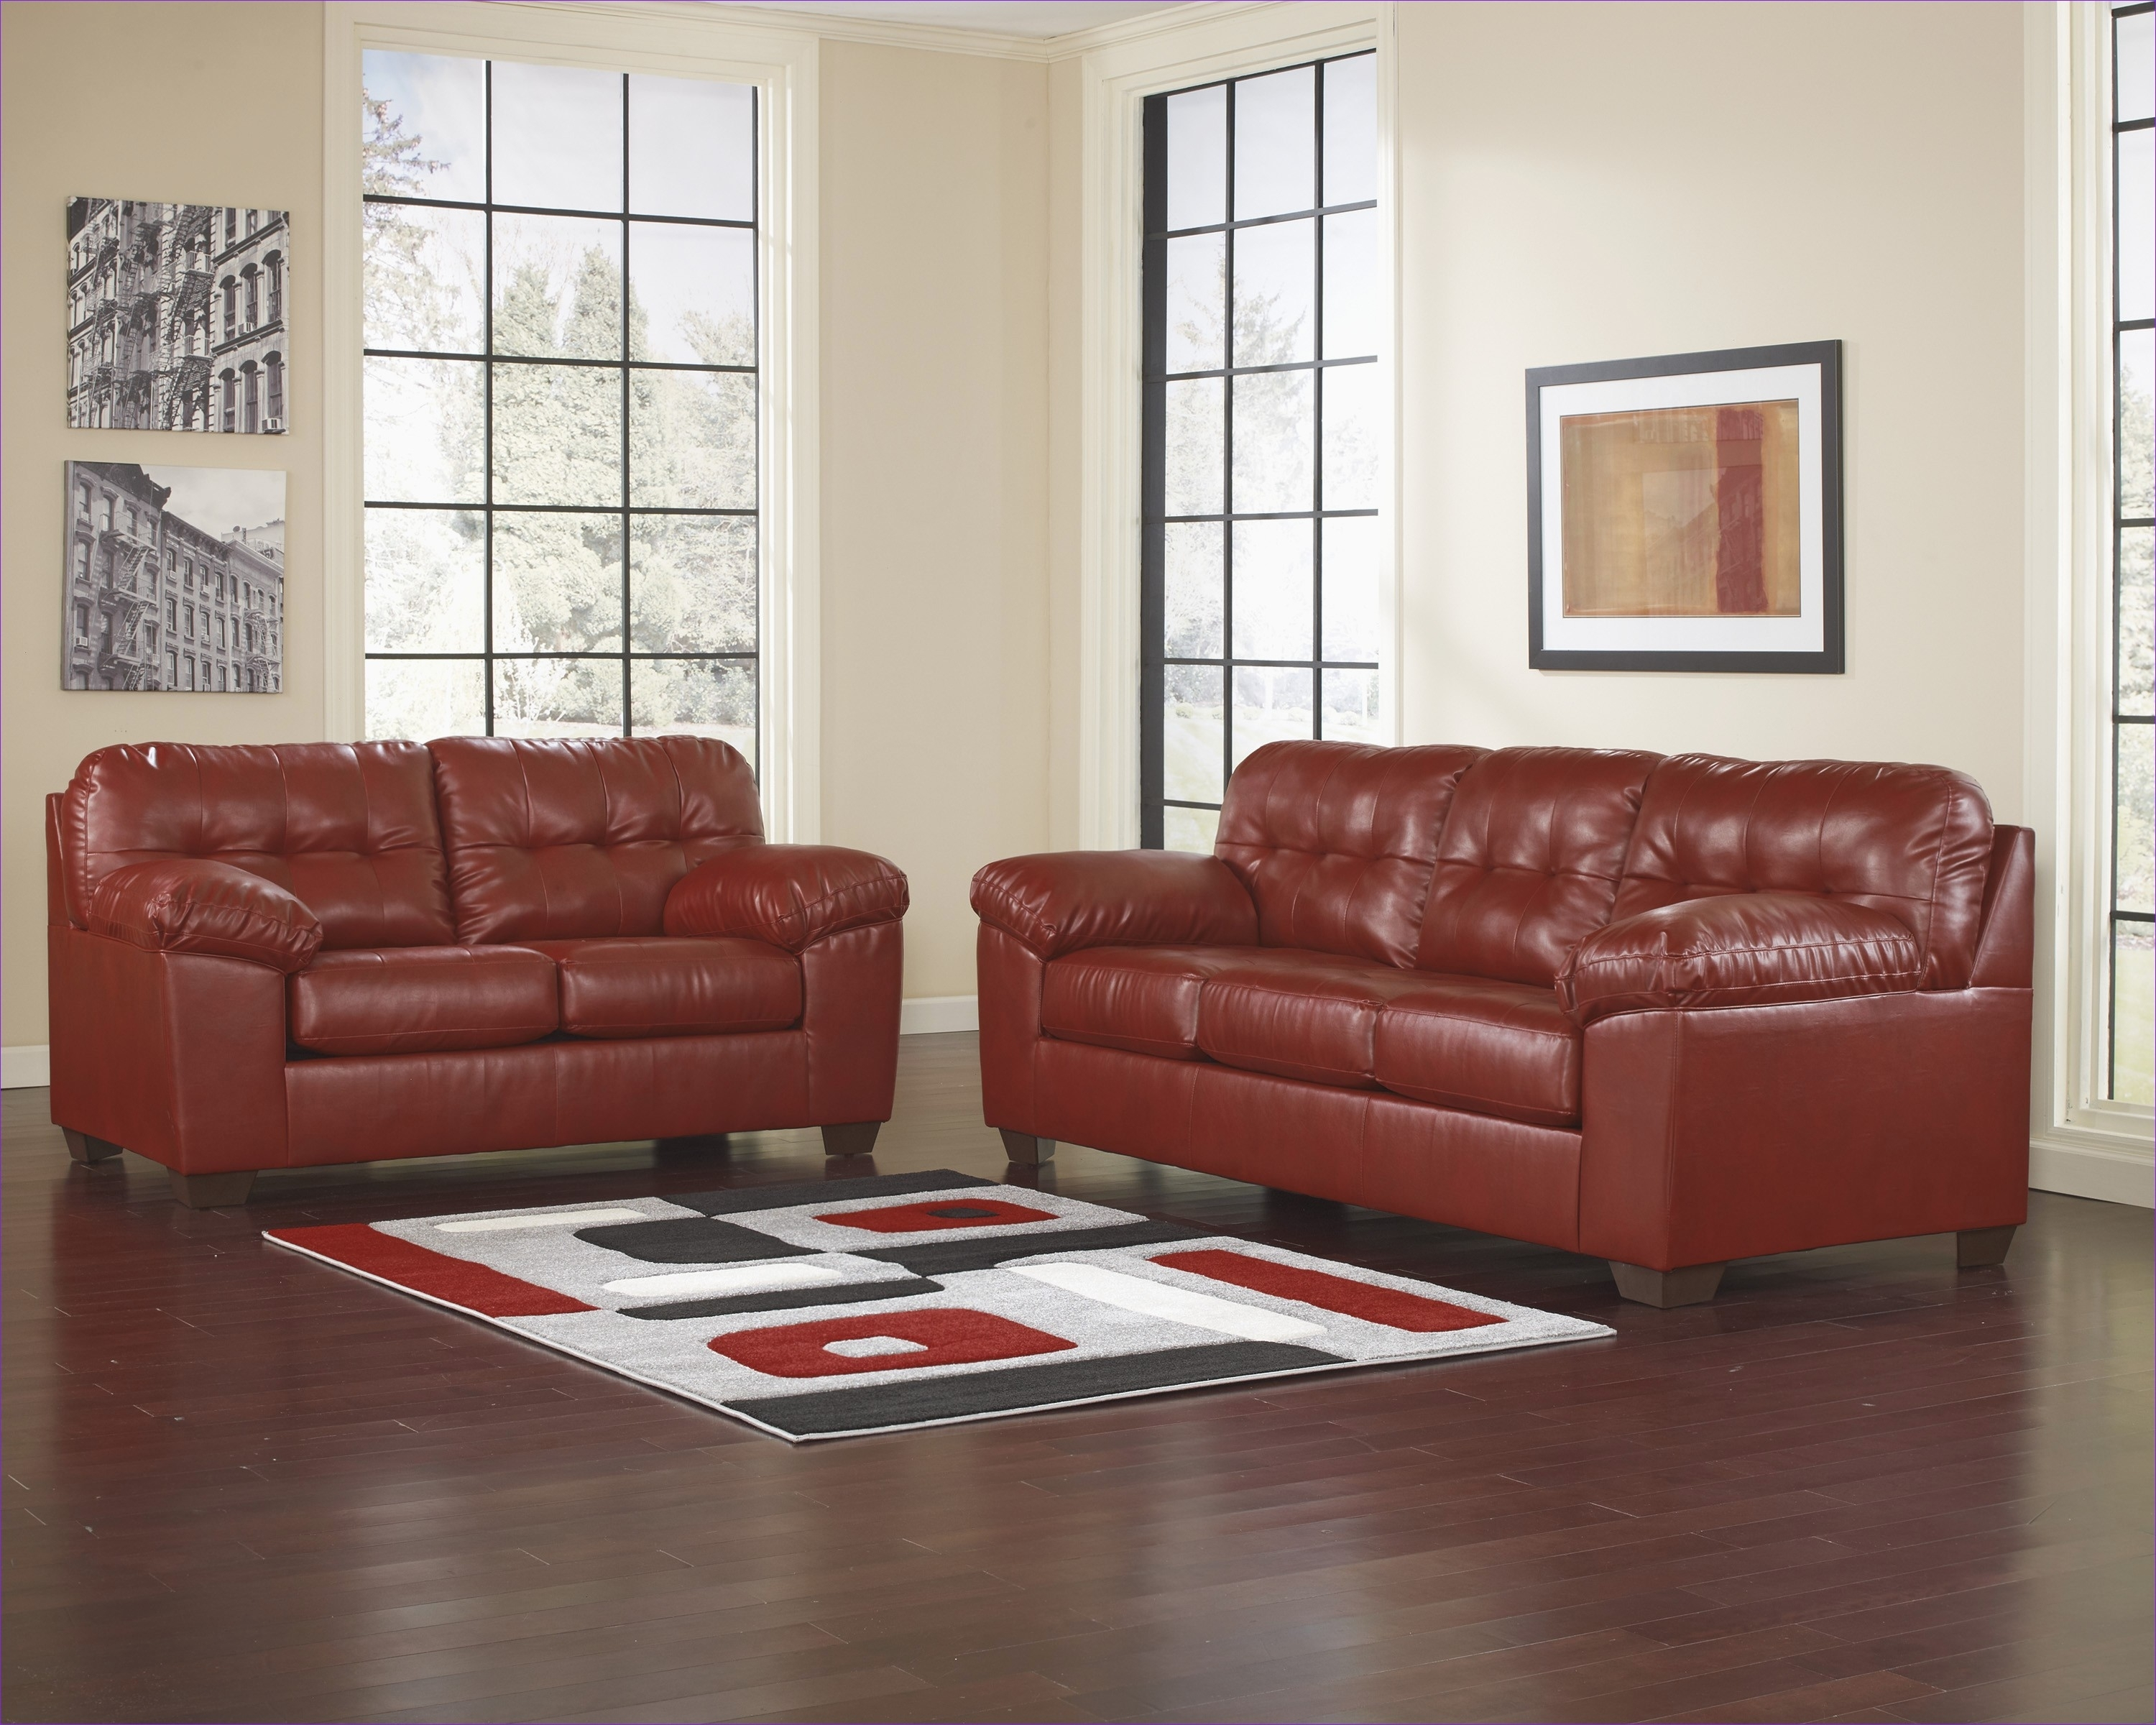 Best Red Leather Couches Ashley Furniture | Sofa And Couch Collection with regard to Red Leather Couches And Loveseats (Image 2 of 15)